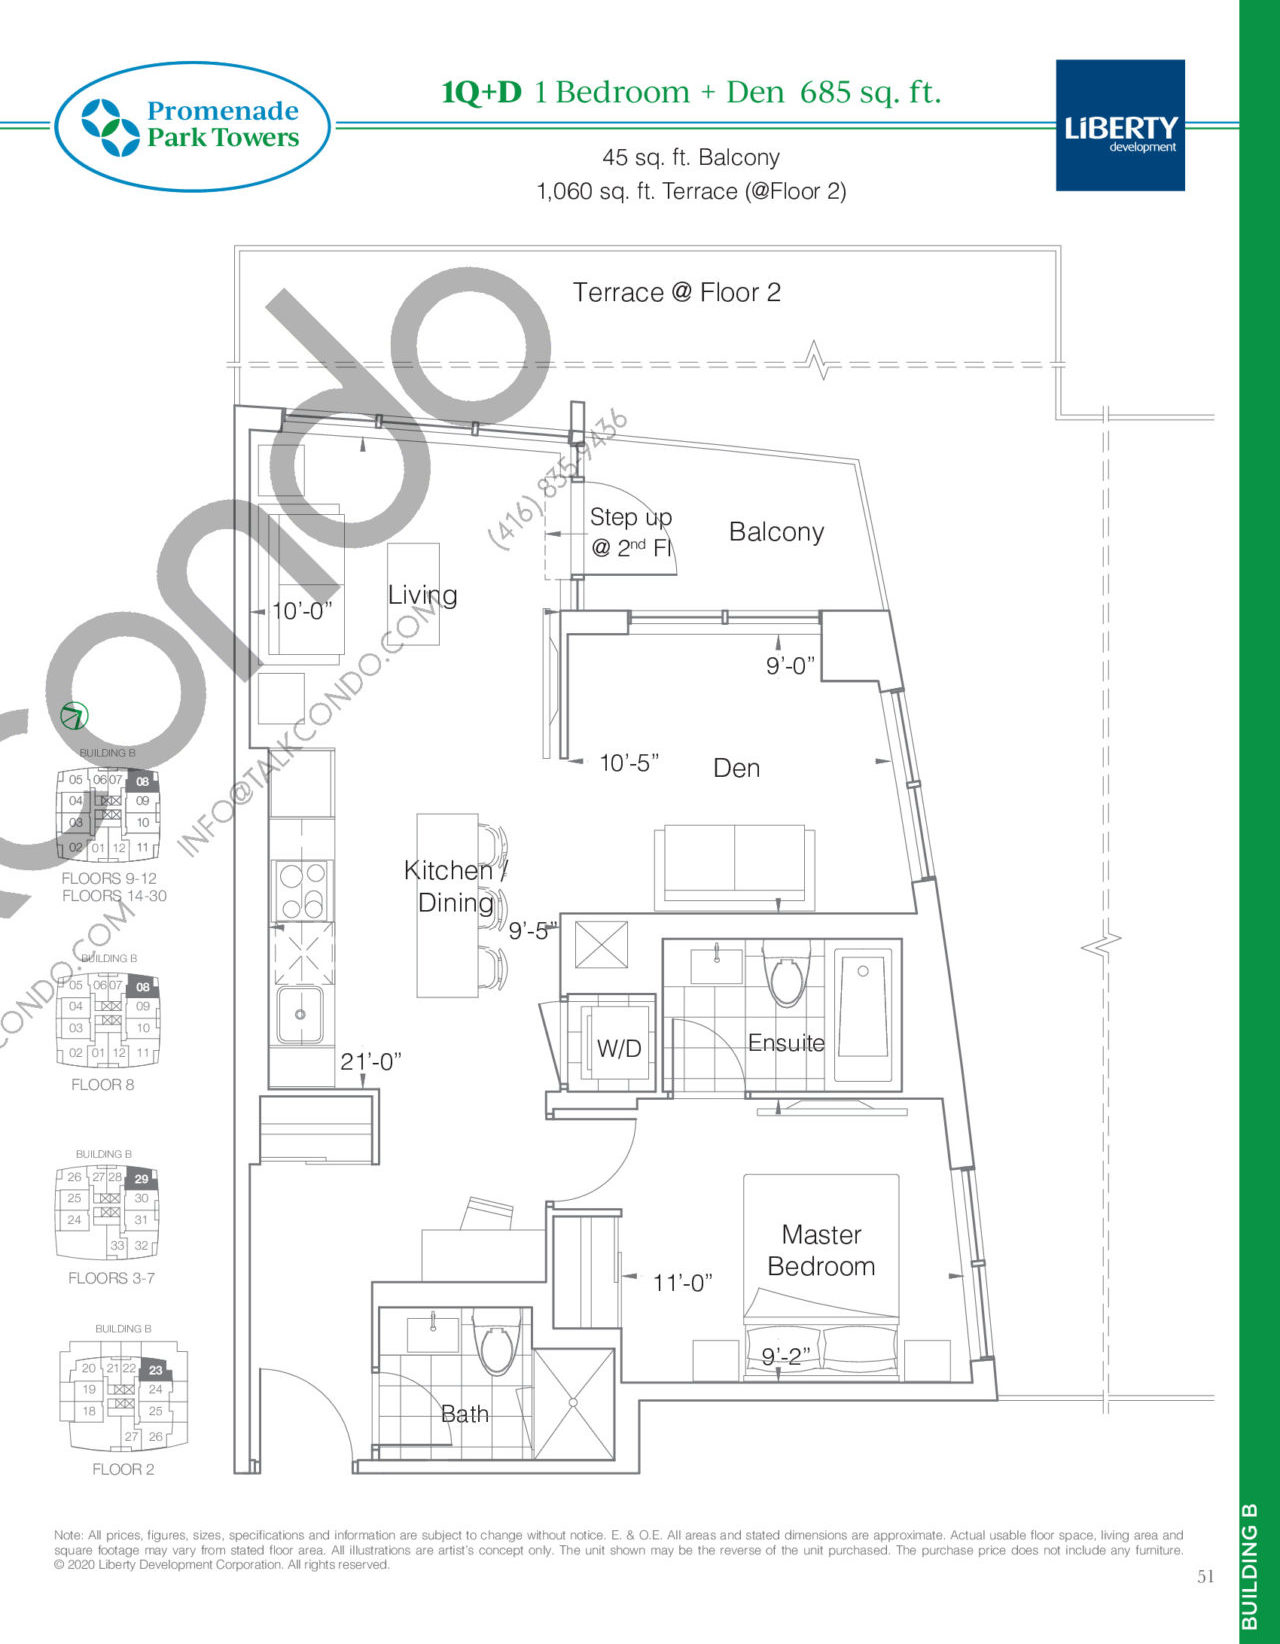 1Q+D Floor Plan at Promenade Park Towers Phase 2 Condos - 685 sq.ft